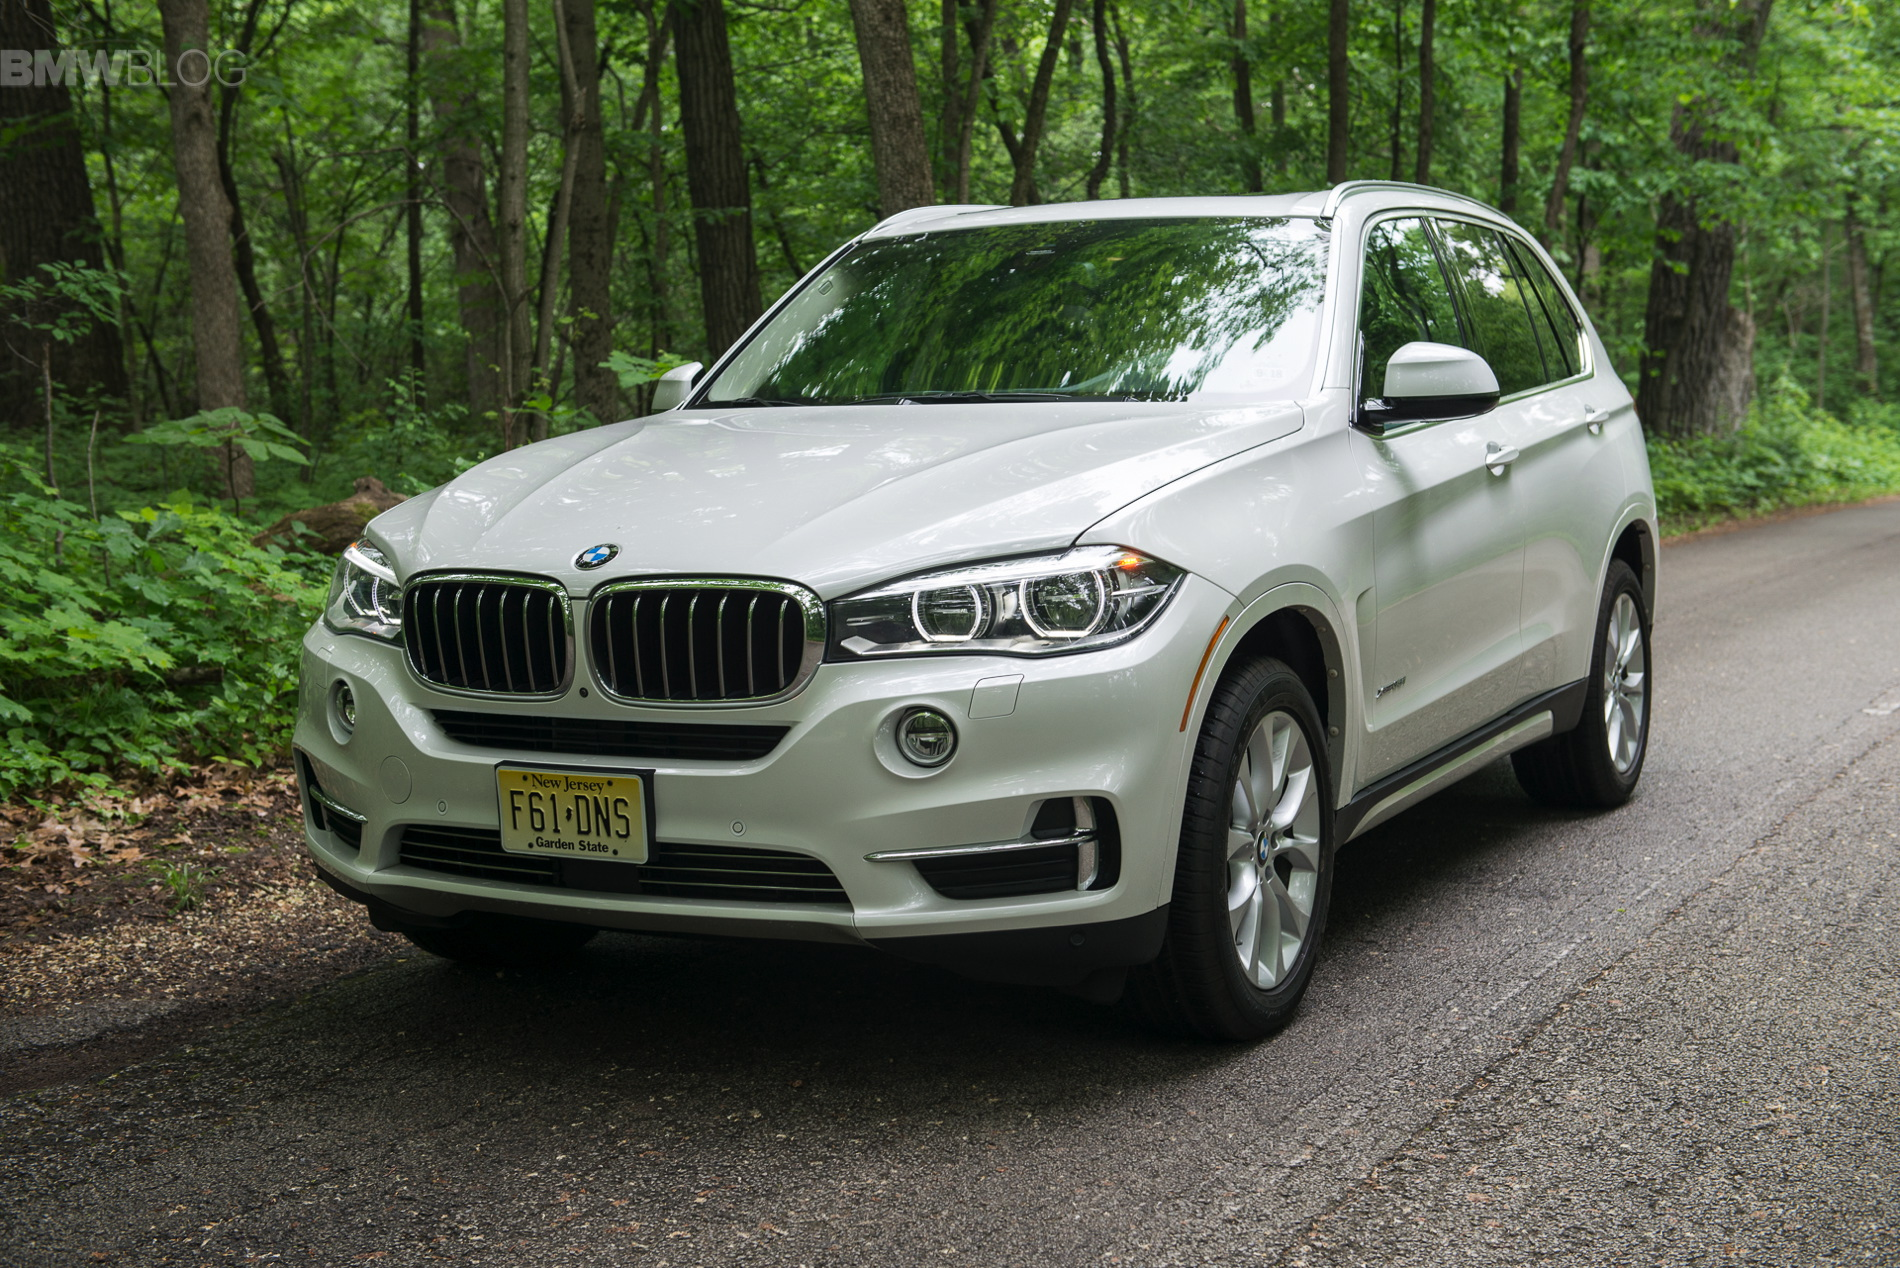 2015 Bmw X5 Scores Five Stars In Frontal Crash Test